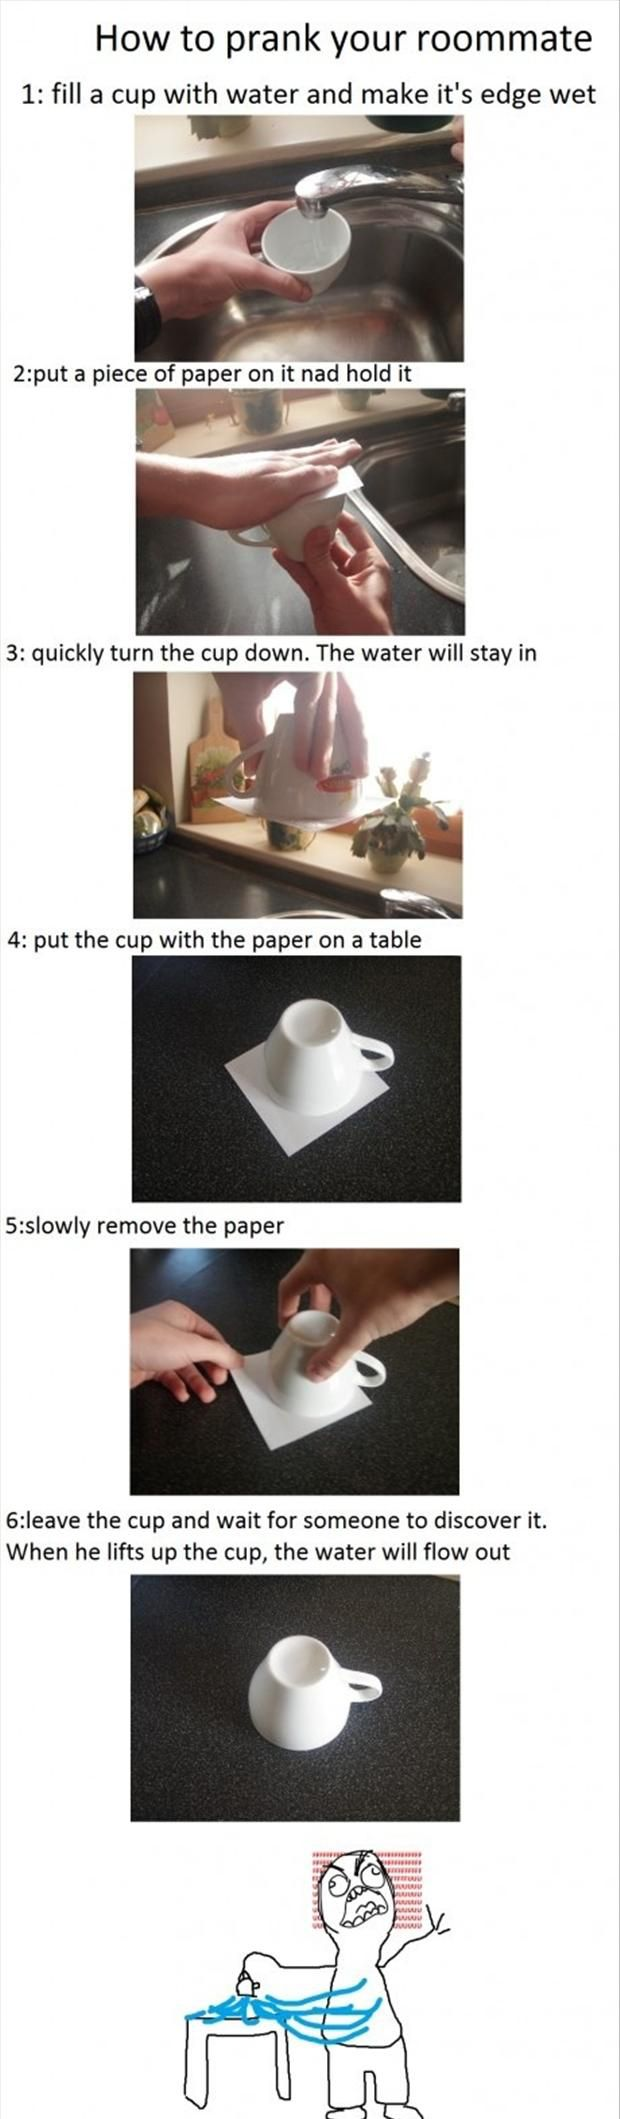 not sure if i could do this to my roommate but to the girls kitchen sure the funny college pranks thats awesome ive been needing an idea for a - Simple Kitchen Pranks